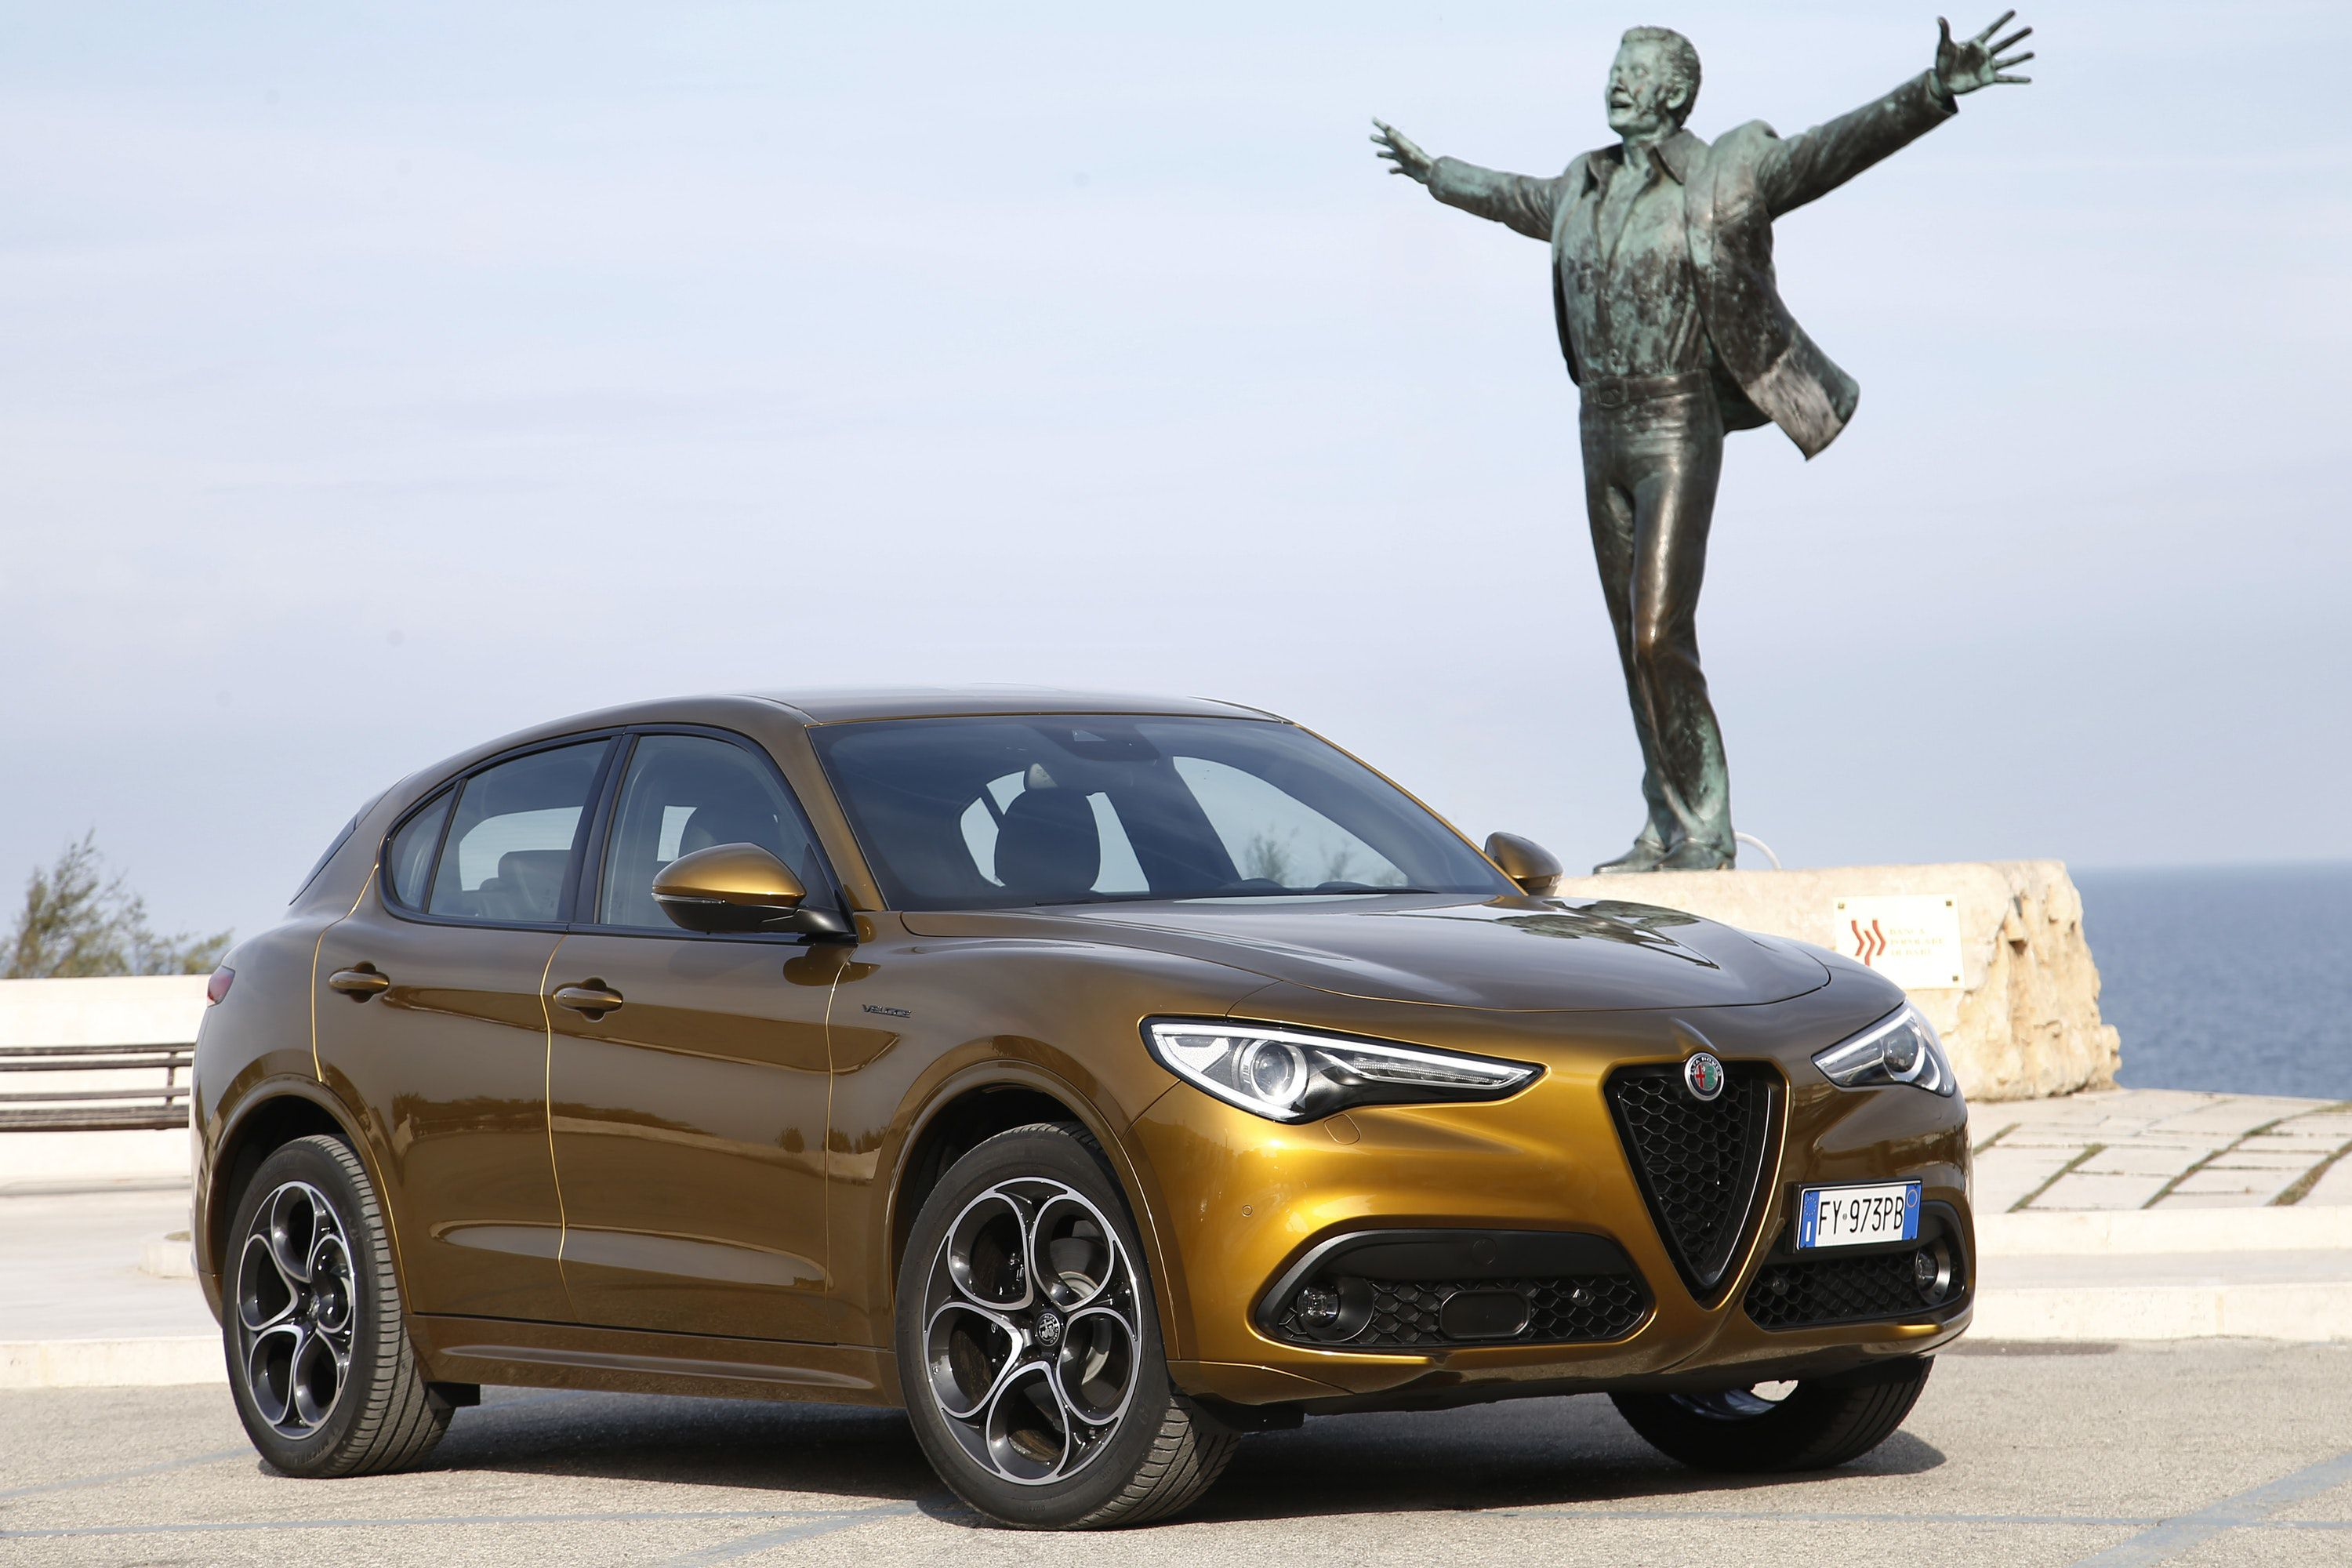 Alfa Romeo Stelvio parked in front of a Statue